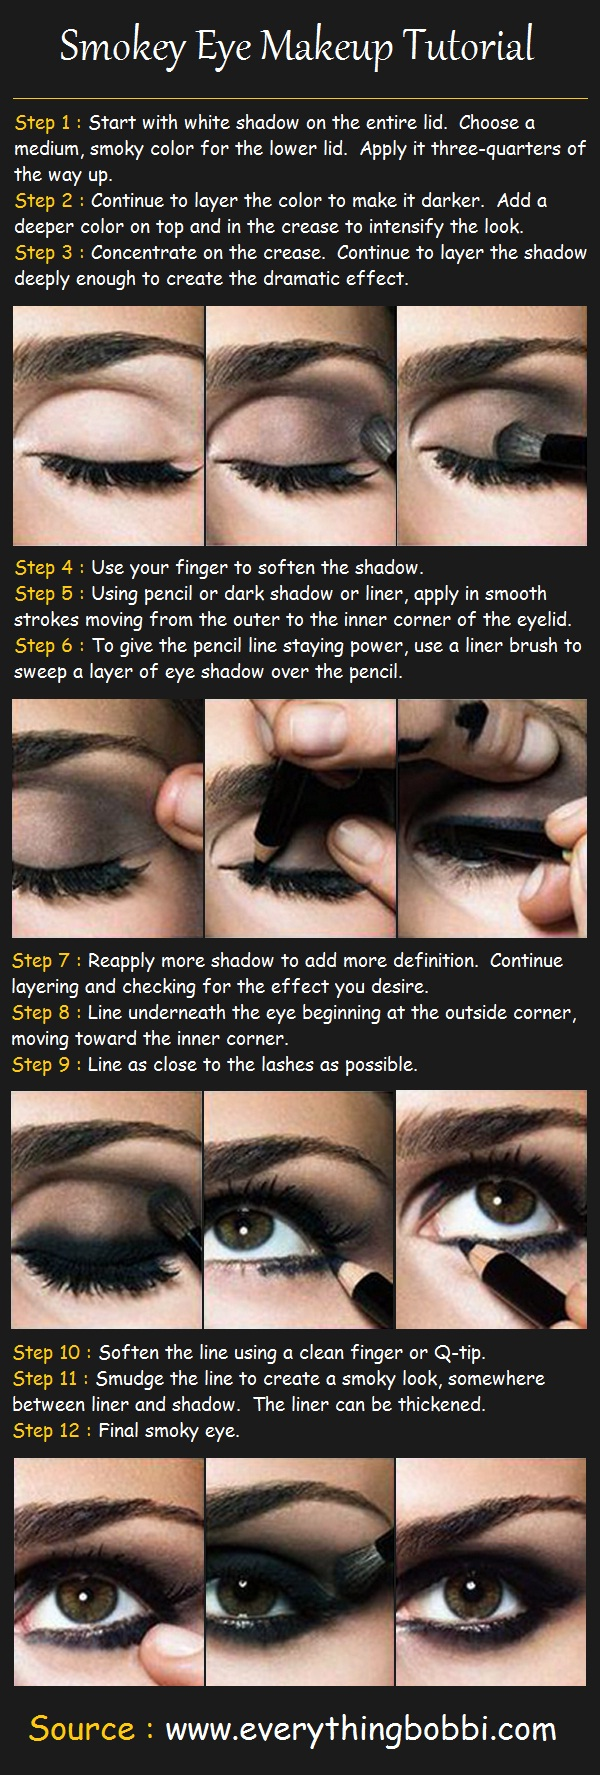 How To Apply Eyeshadow And Eye Makeup Like A Boss Tips Tricks